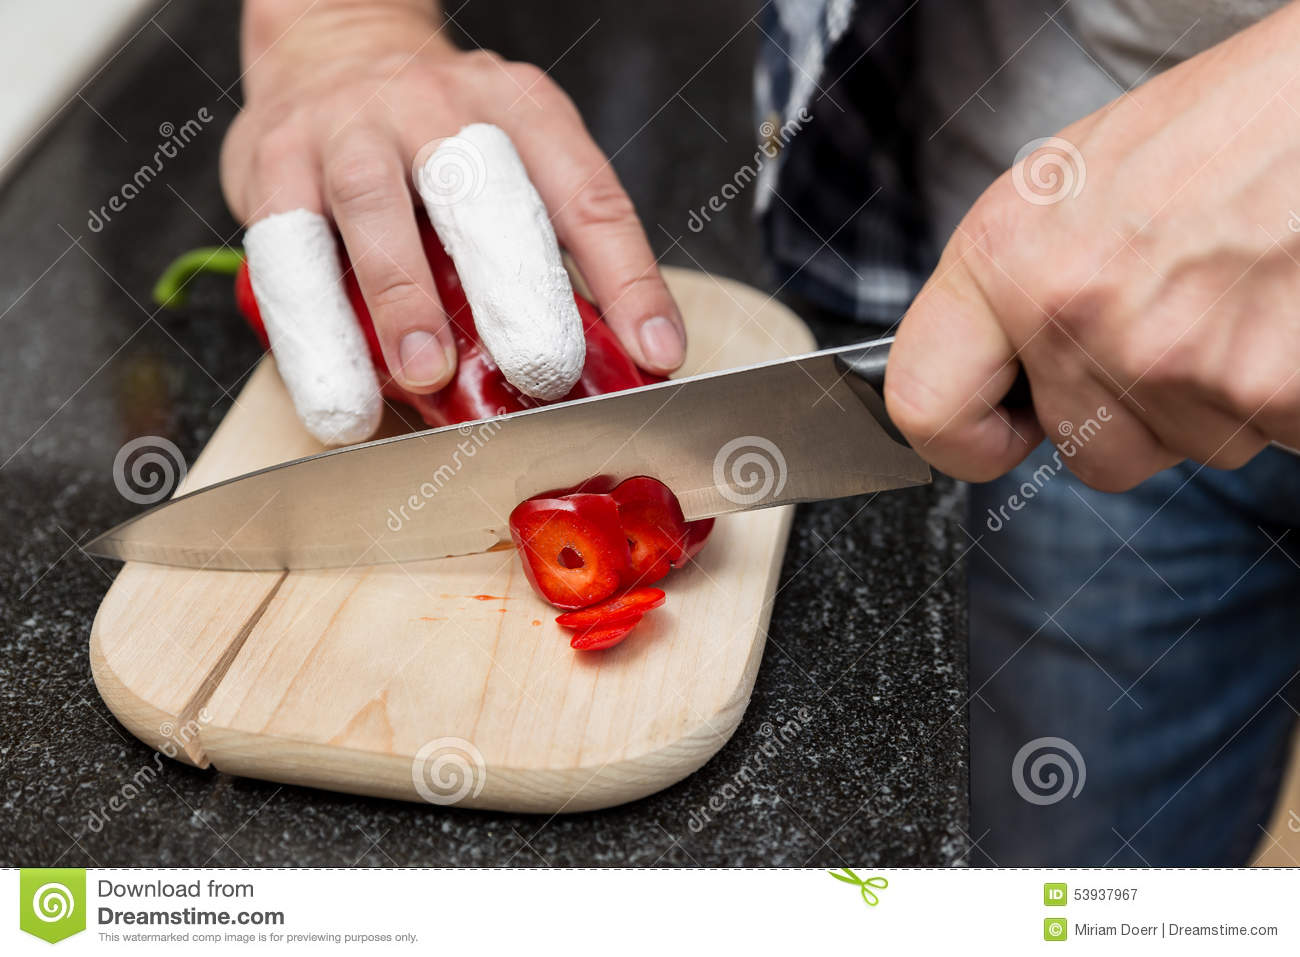 Man Cuts With Injured Fingers Peppers Stock Image - Image of finger ...